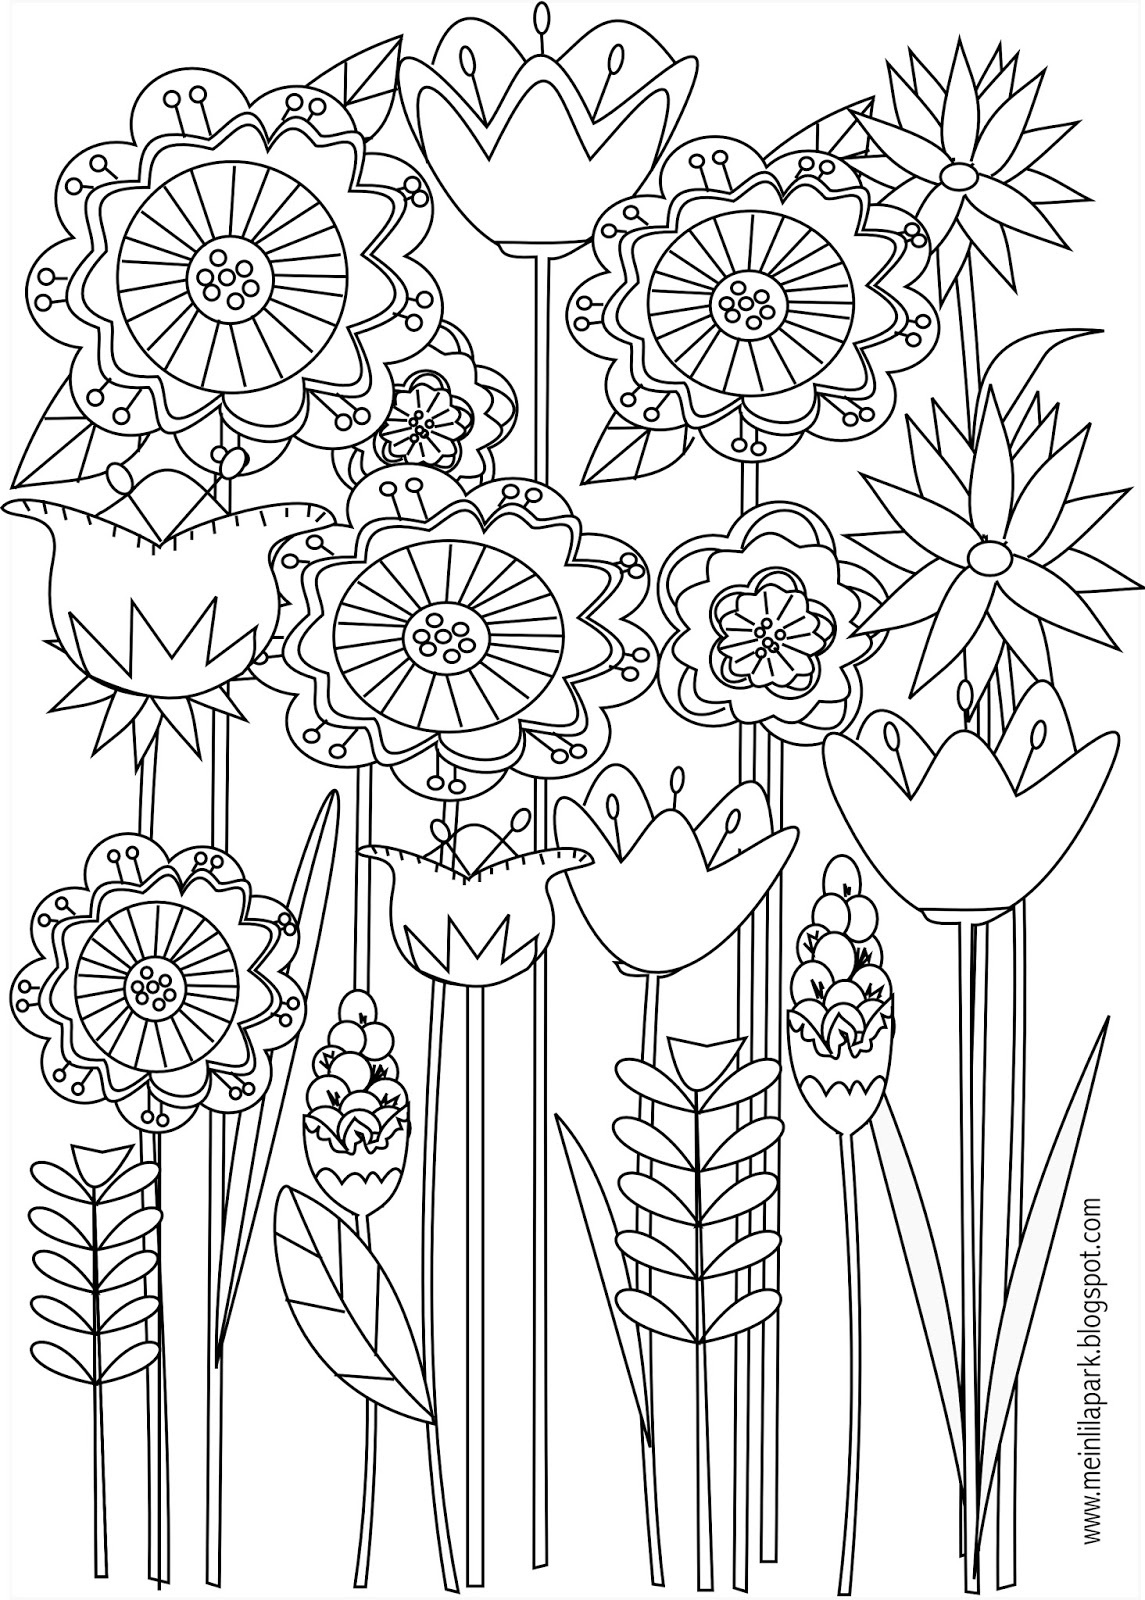 adult coloring pages flowers flower mandala coloring page adult coloring art therapy pdf flowers coloring adult pages